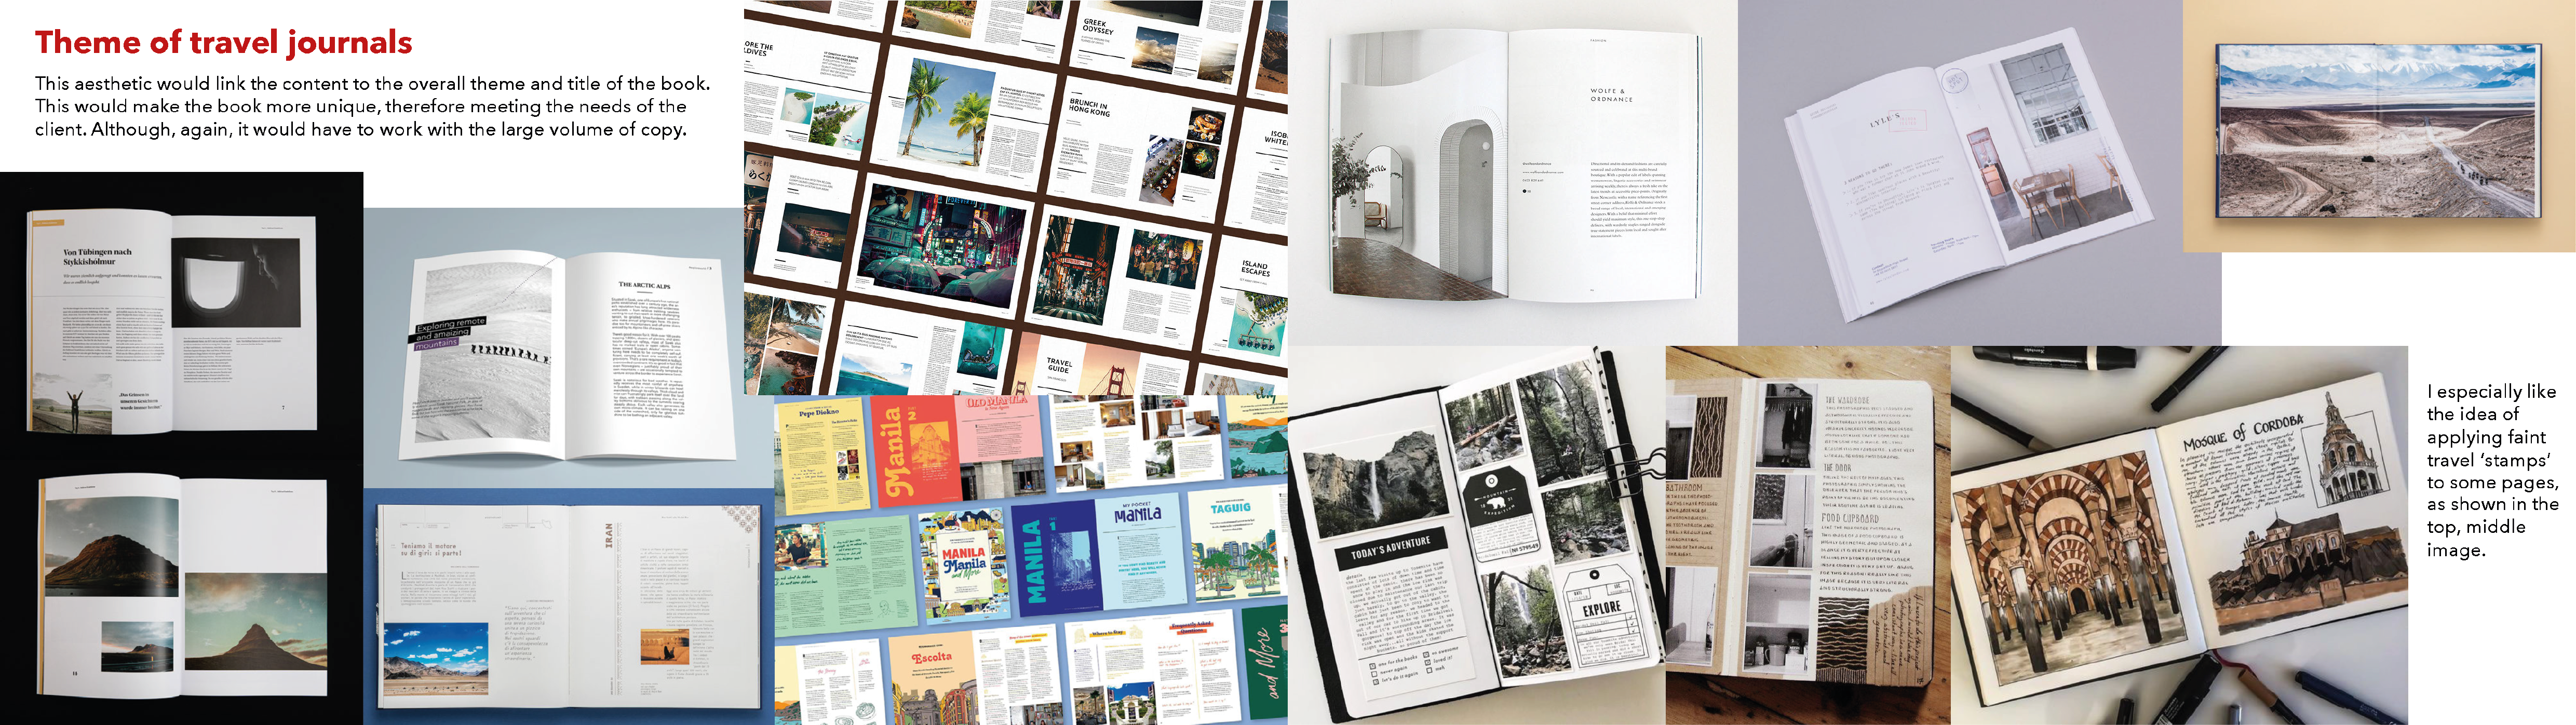 Mood boards on the theme of travel books